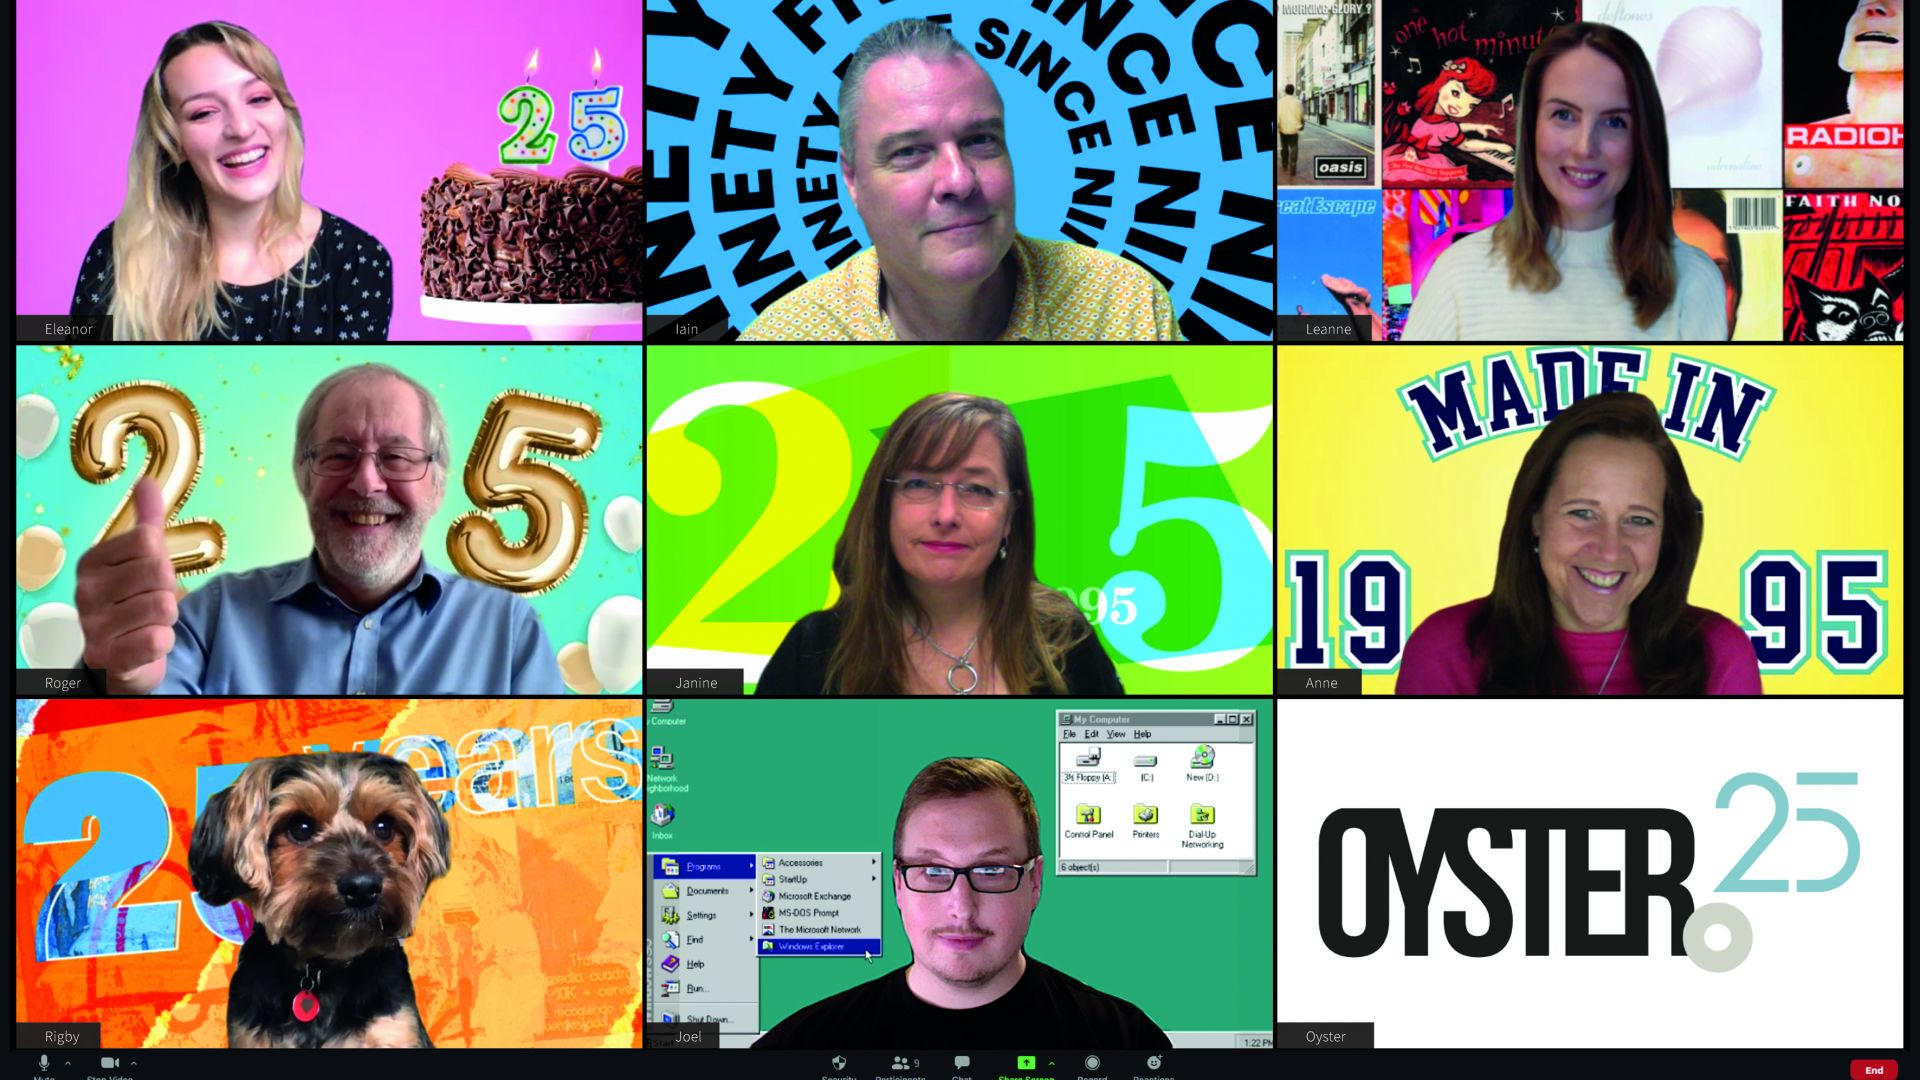 Hertfordshire marketing agency, Oyster Studios, celebrates 25 years in business with the launch of a new website